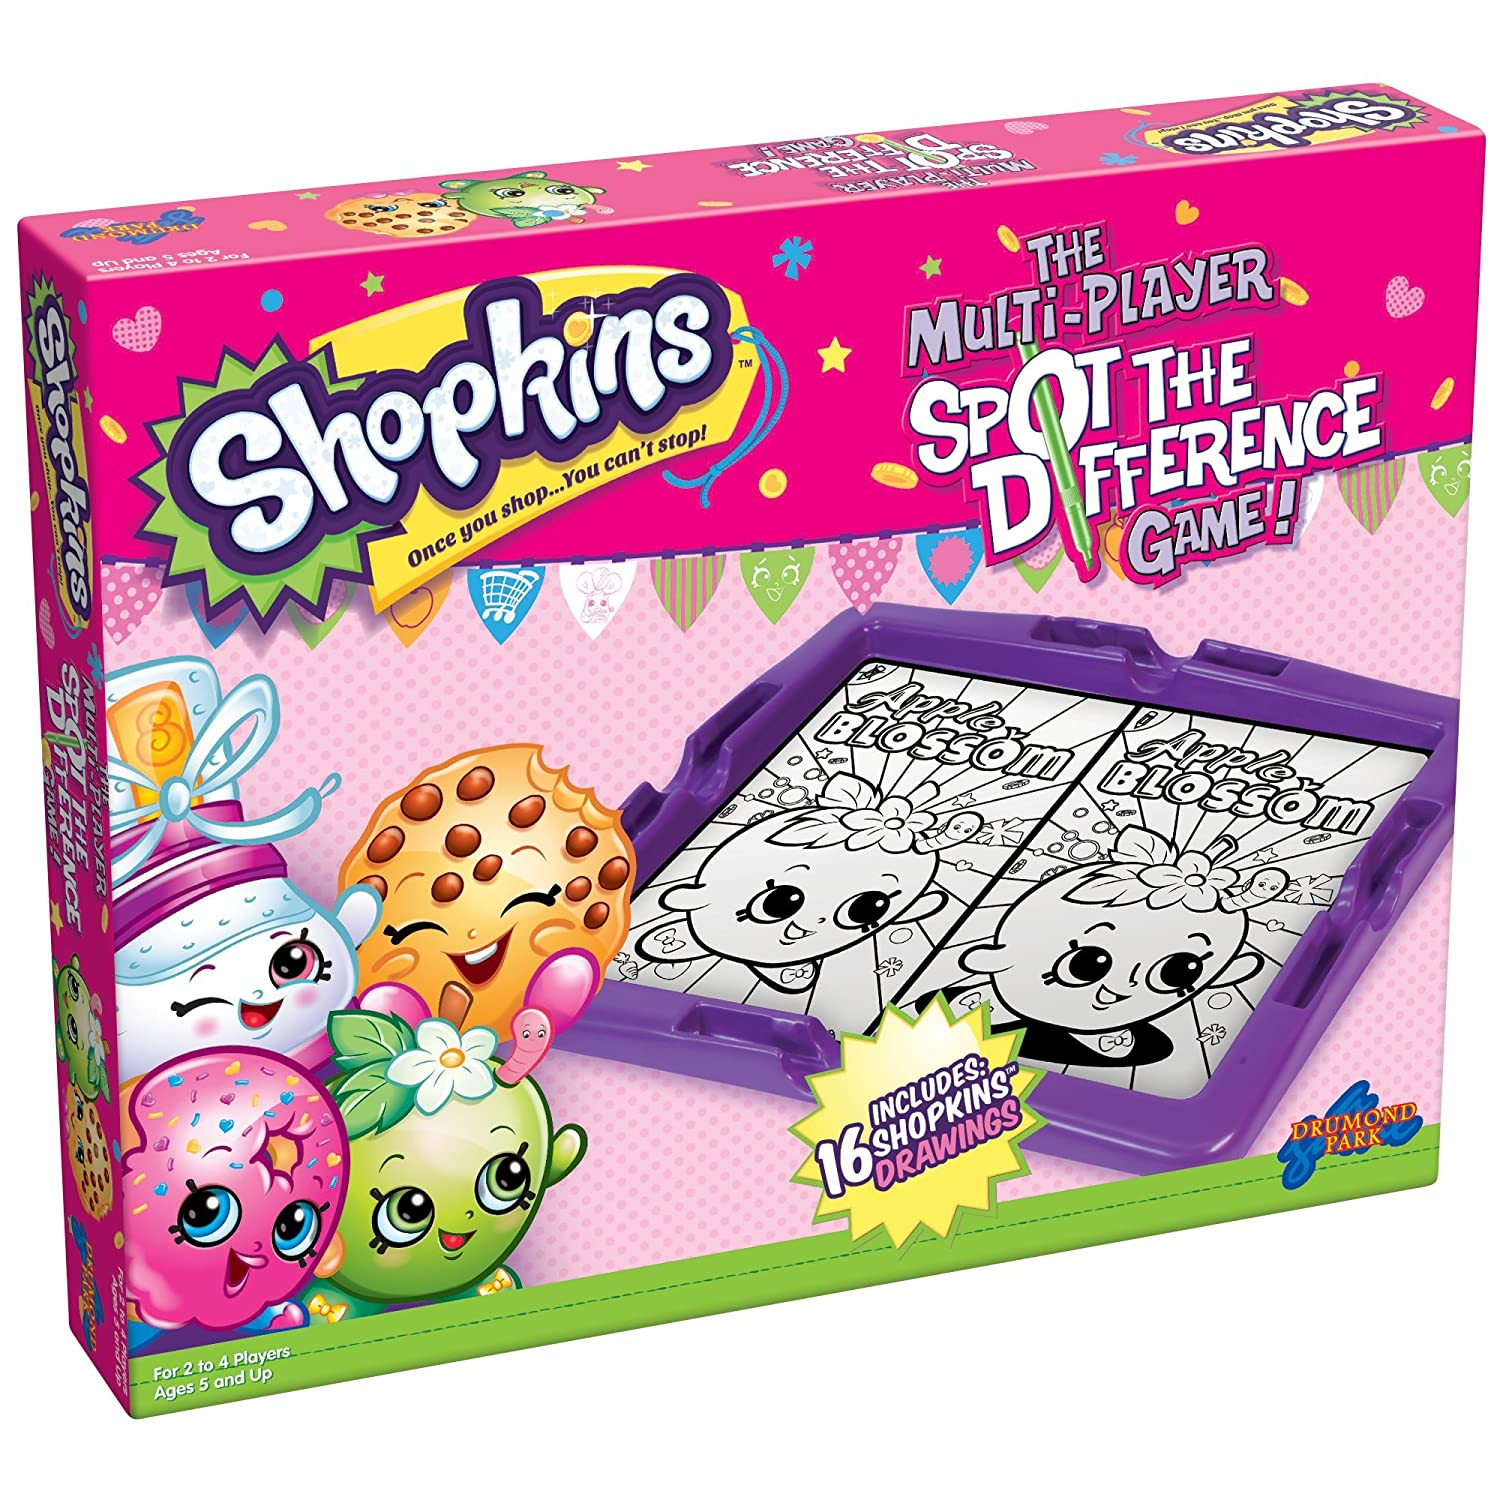 SHOPKINS MAKE YOUR OWN CARDS CRAFT KIT PARTY BAG GIFTS RRP £4.99 EACH